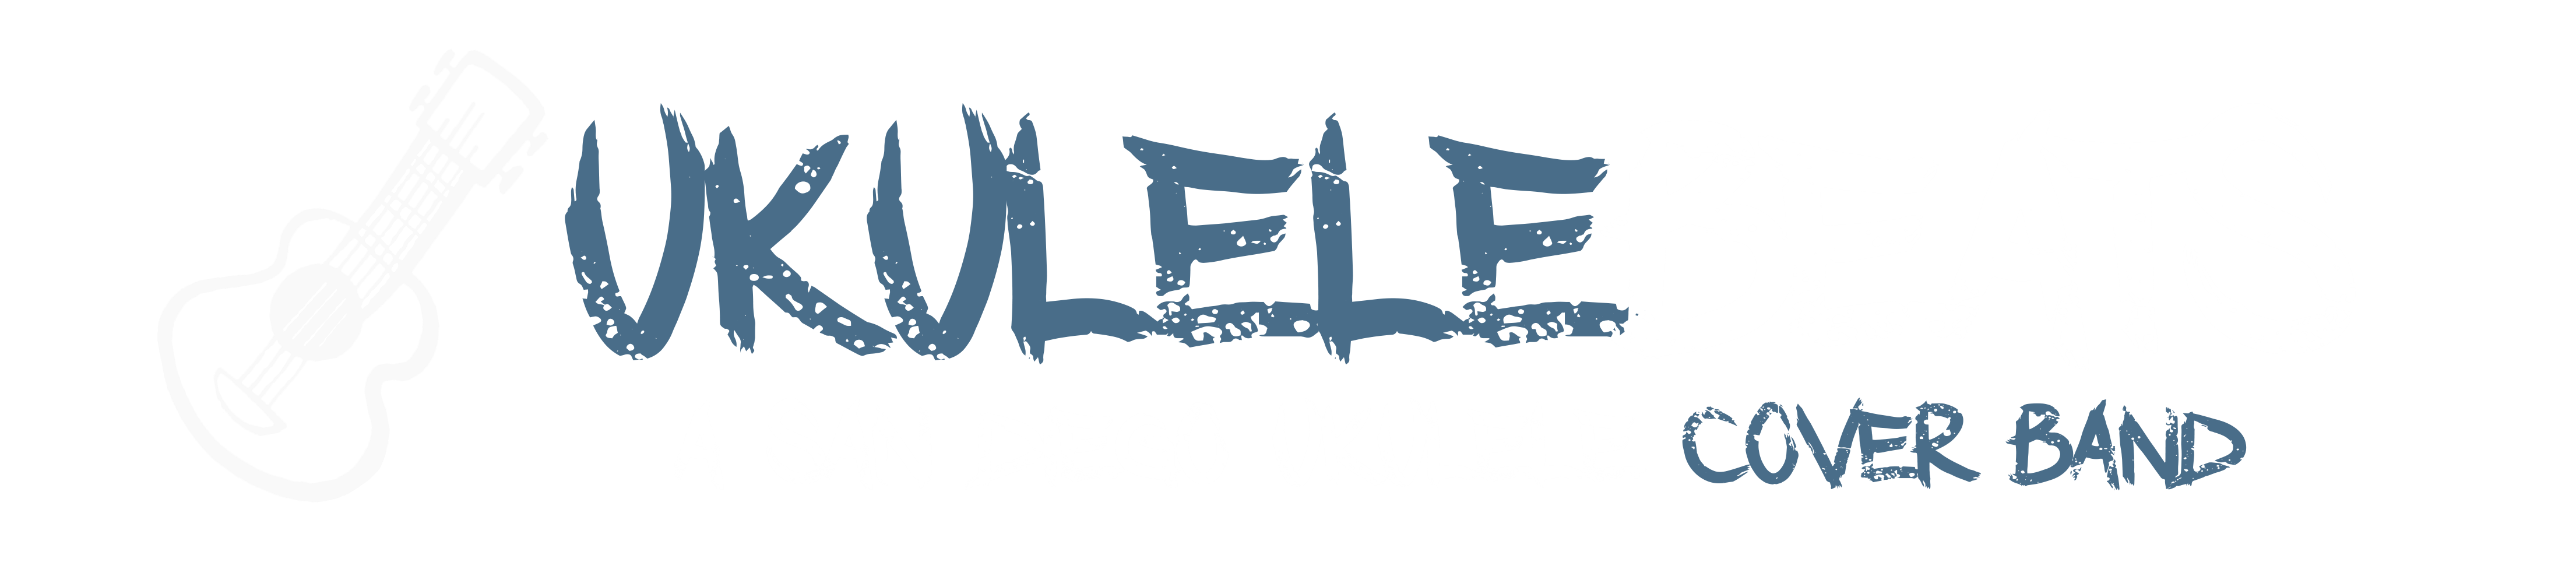 A San Diego Ukulele Cover Band